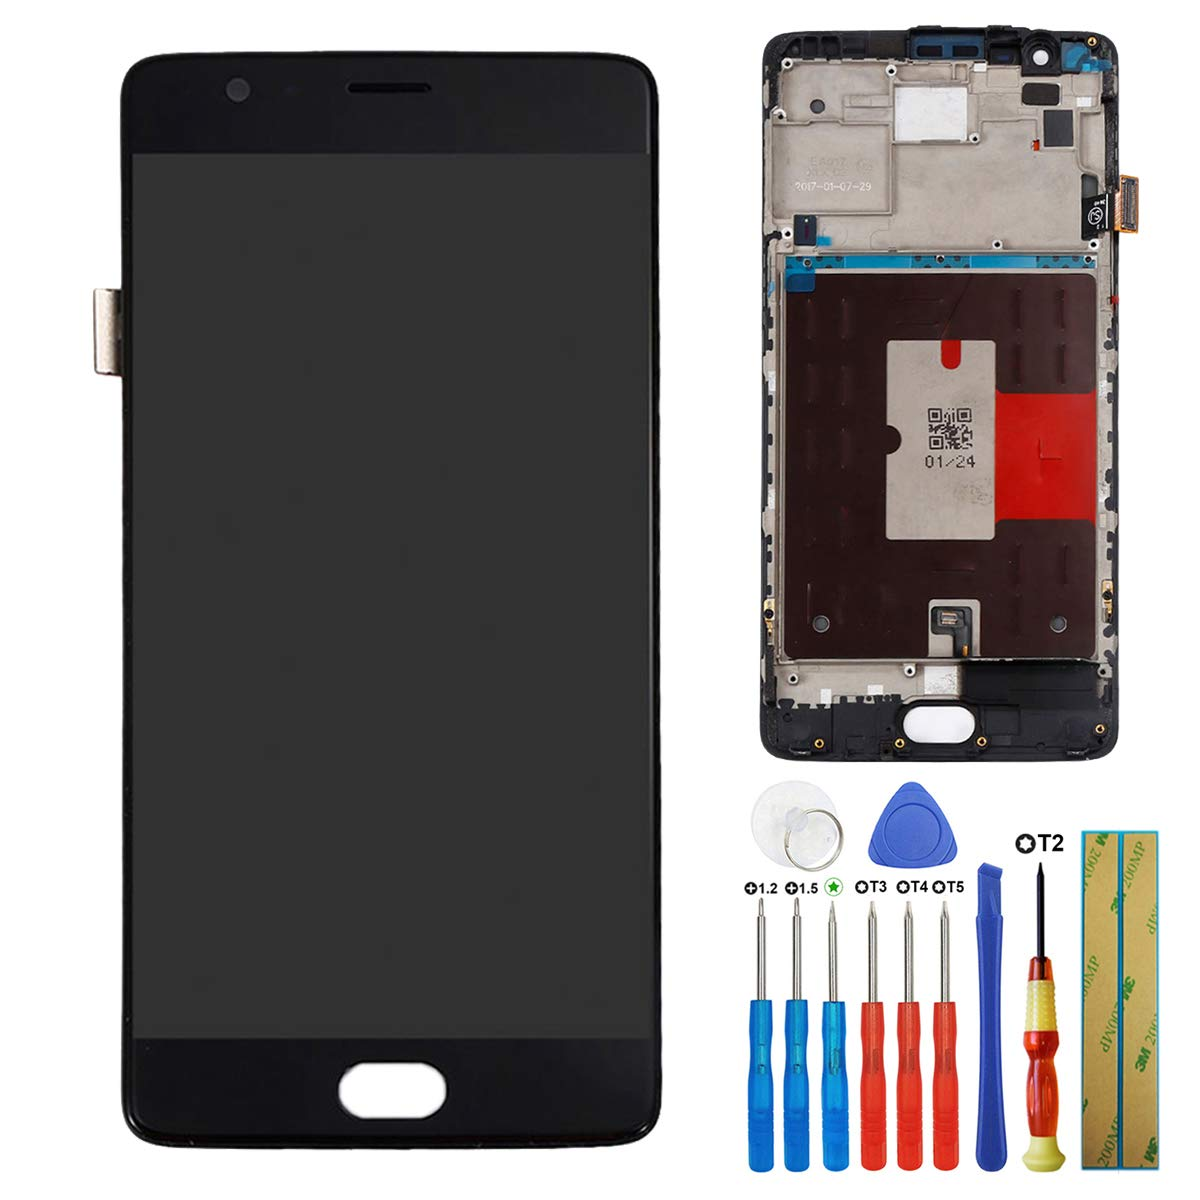 for OnePlus 3 3T A+++ Amoled Touch Screen Display Assembly 5.5'' Glass LCD Black Replacement PartsWith Frame + Tools